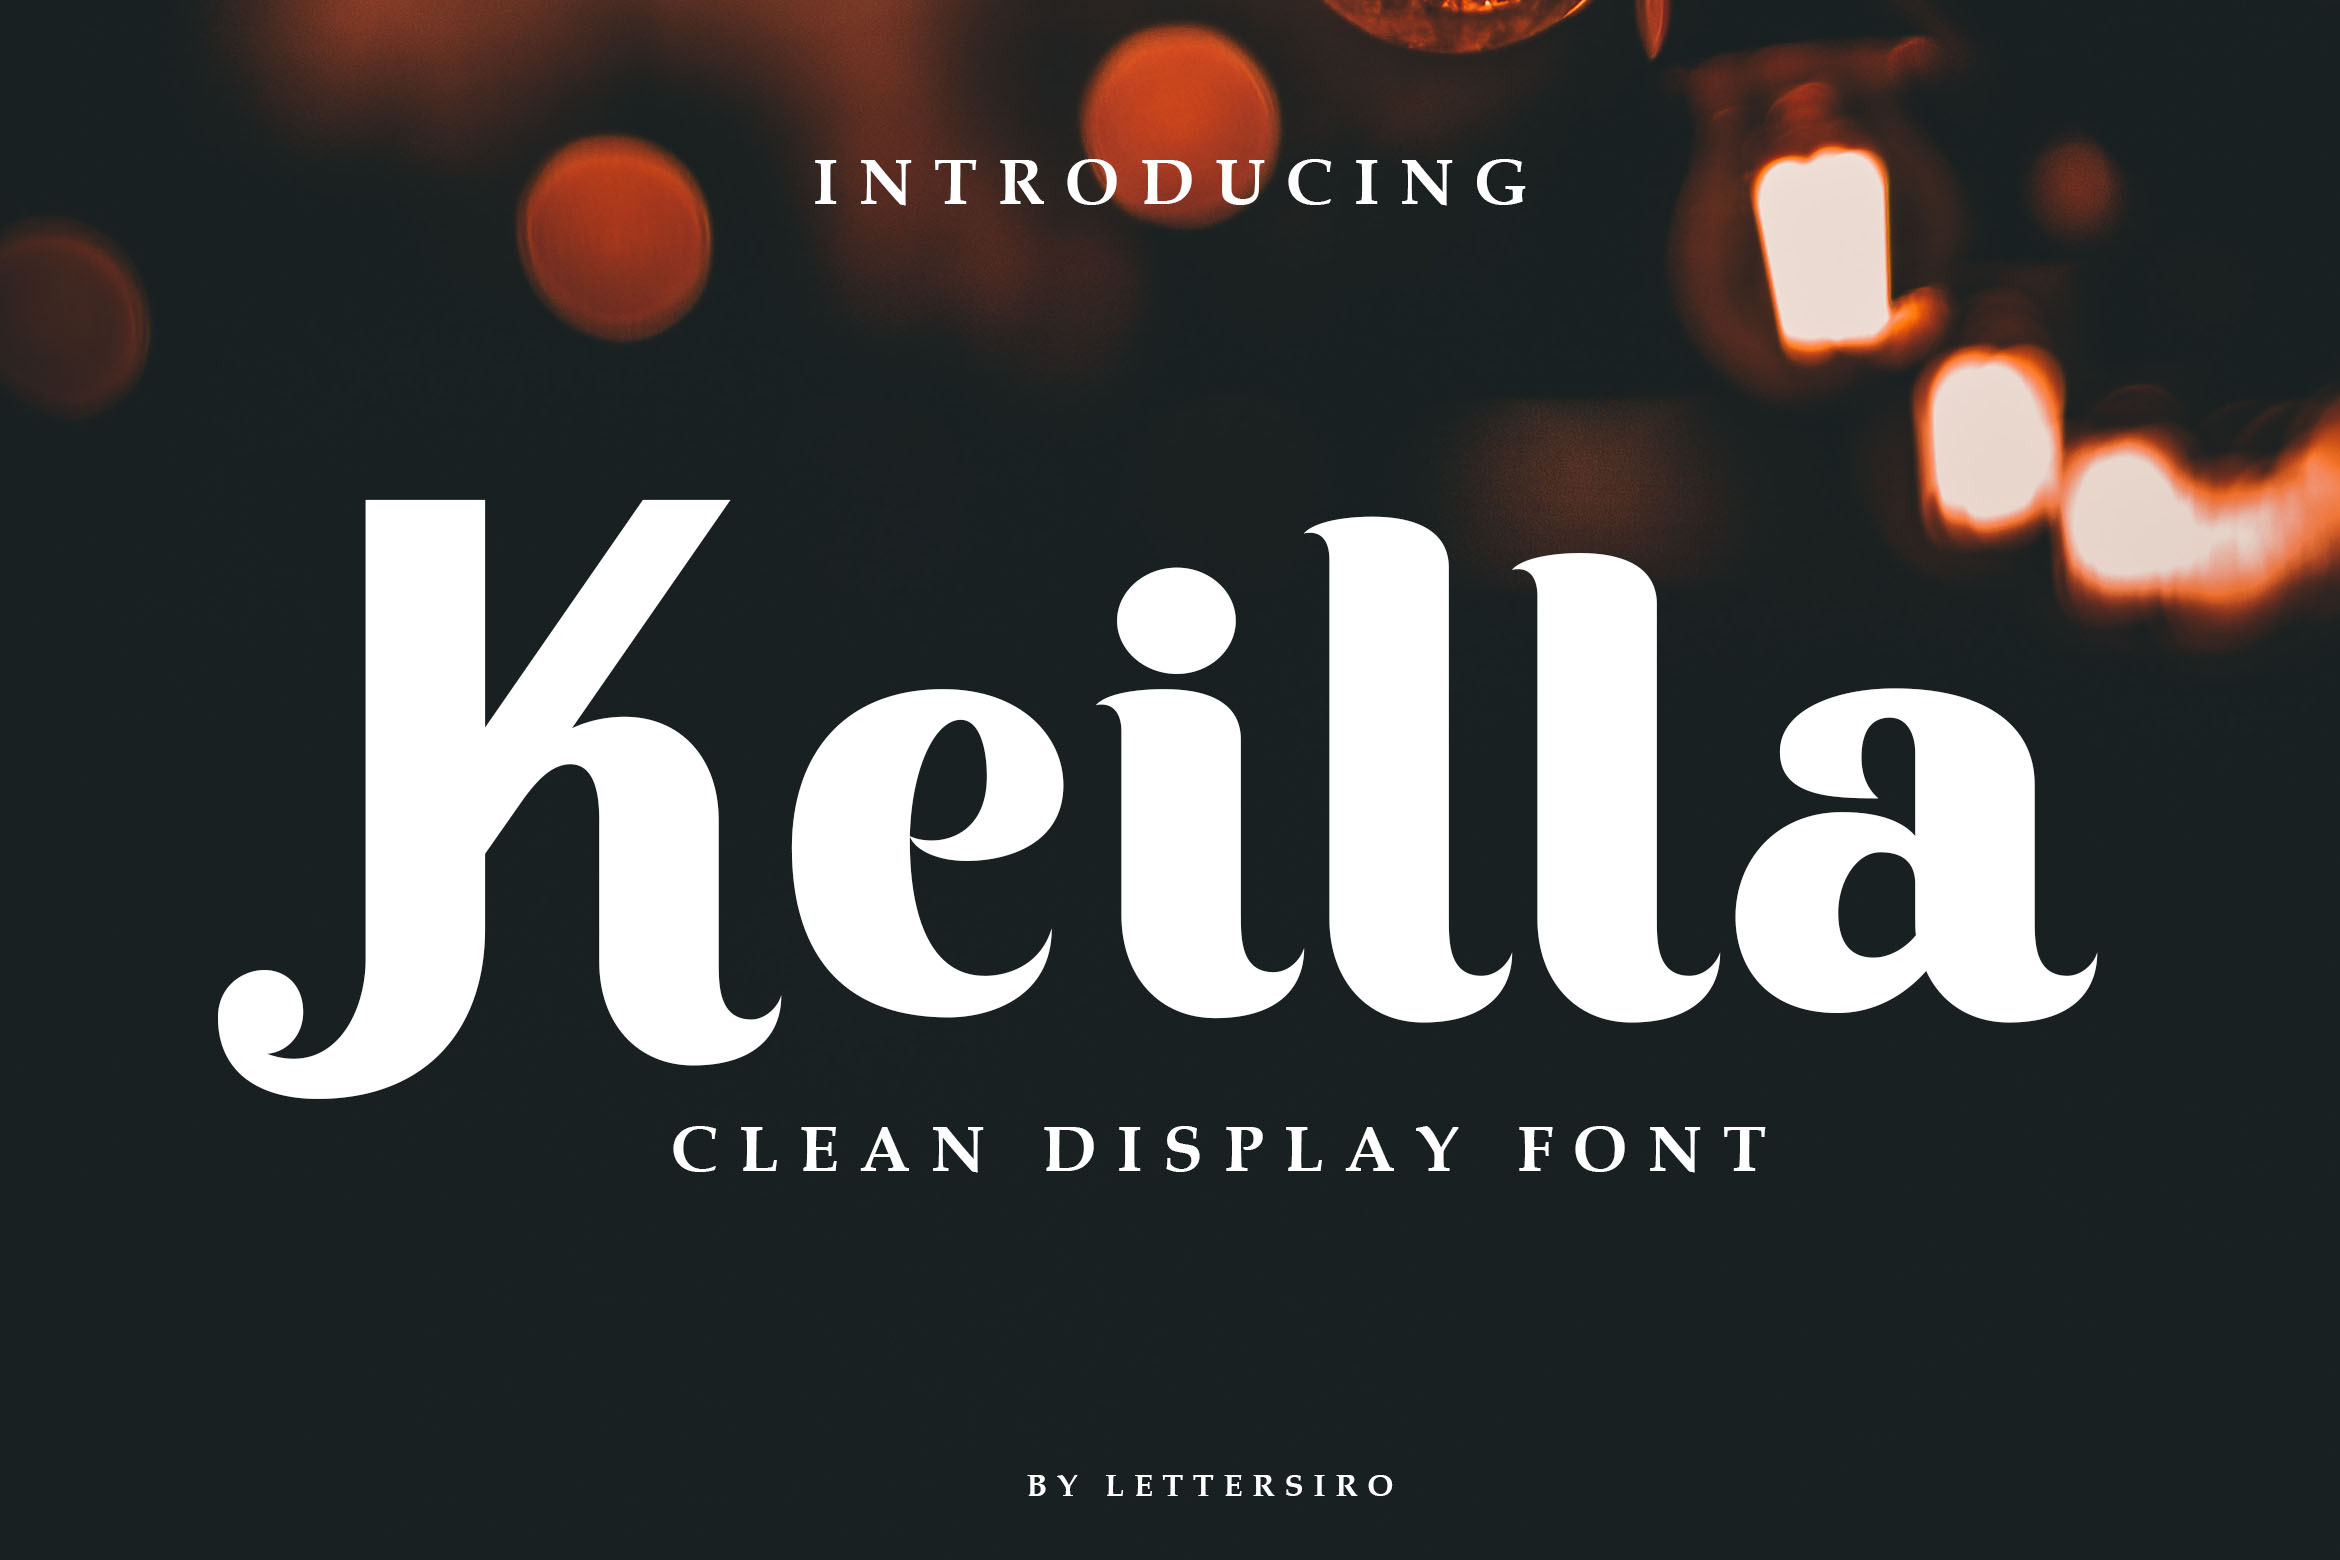 Keilla - Clean Display Font example image 2